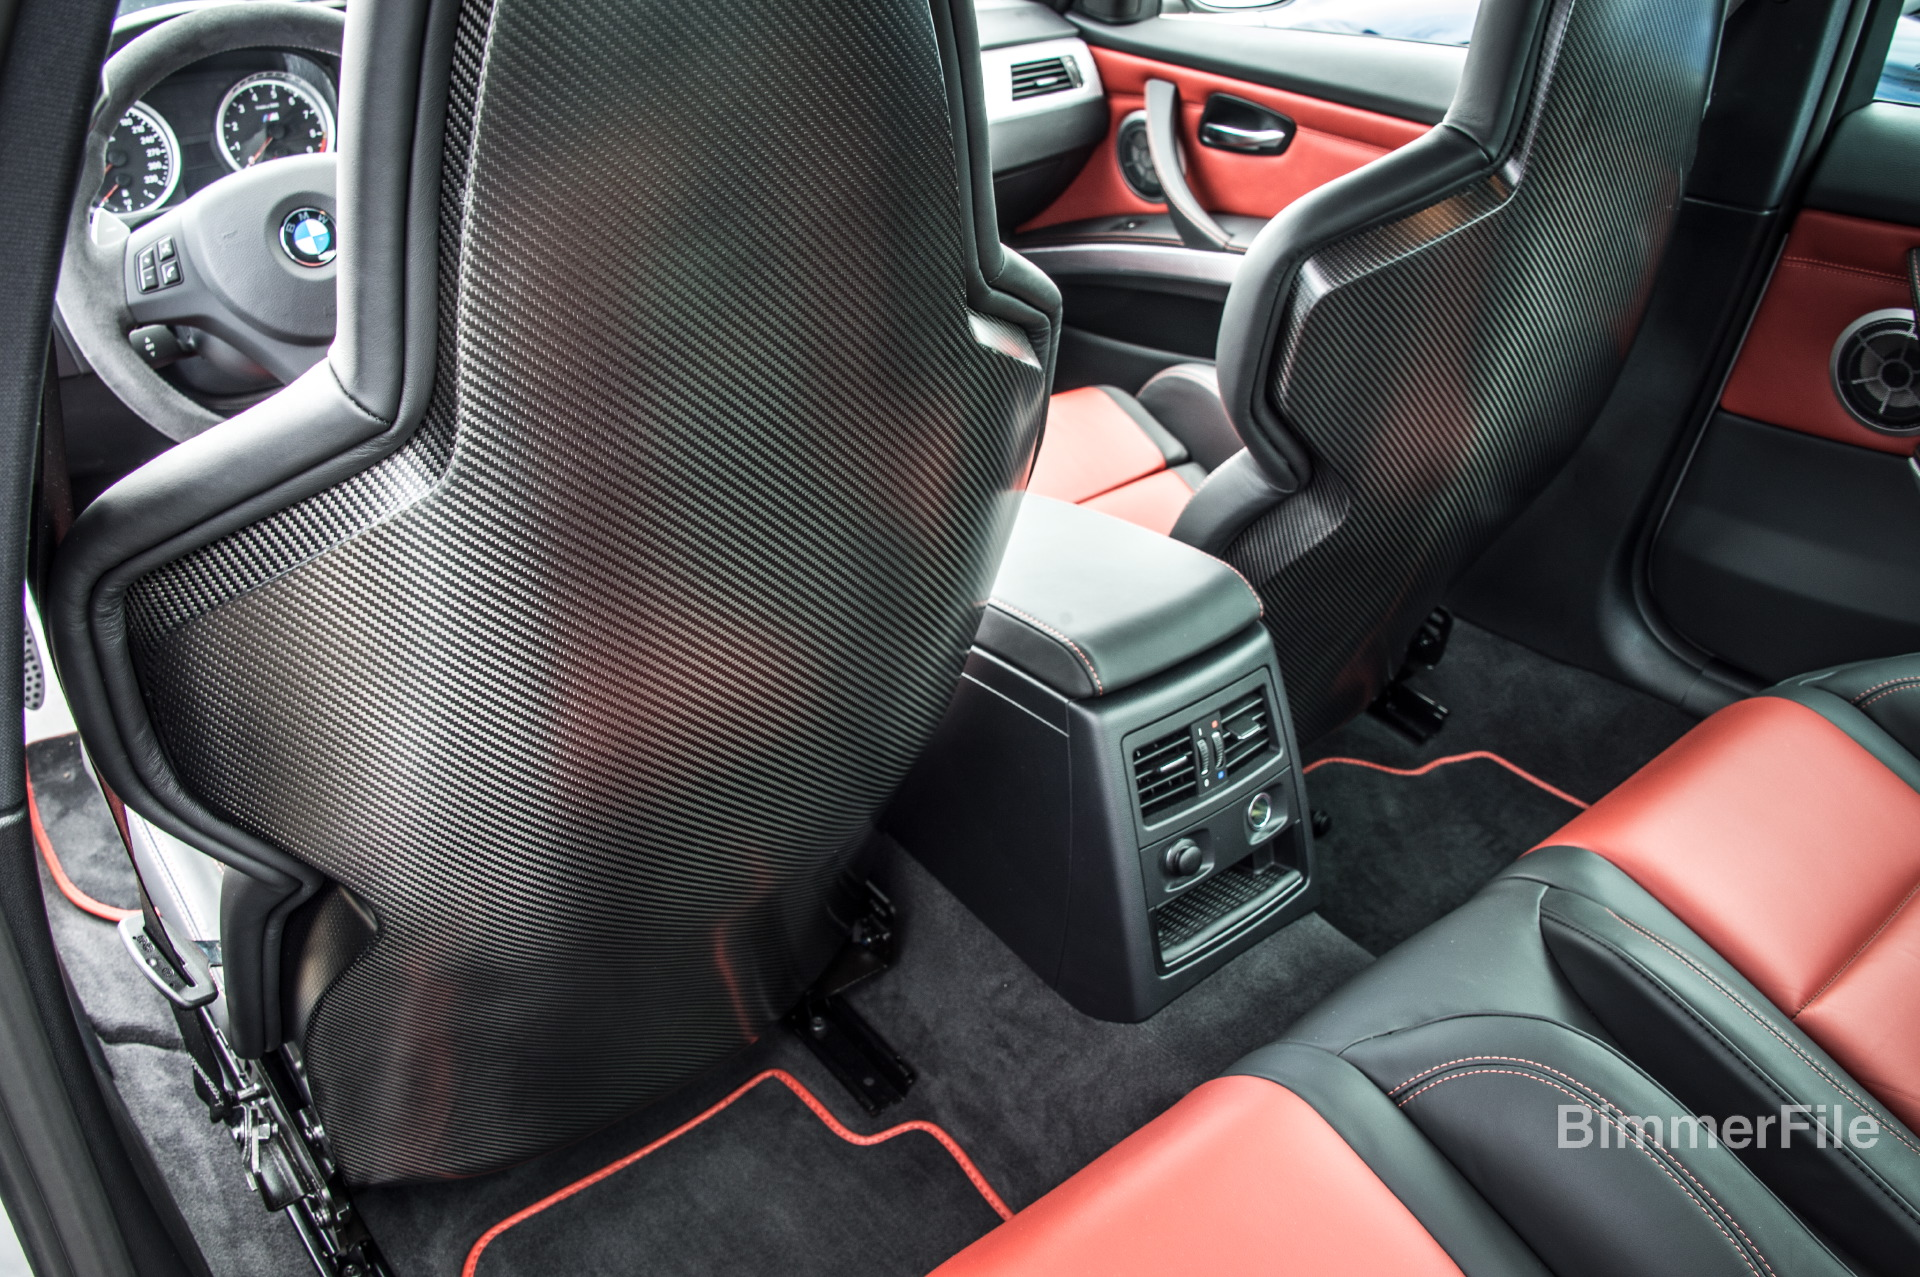 Confirmed Bmw M3 M4 To Have Optional Carbon Backed Seats Bimmerfile